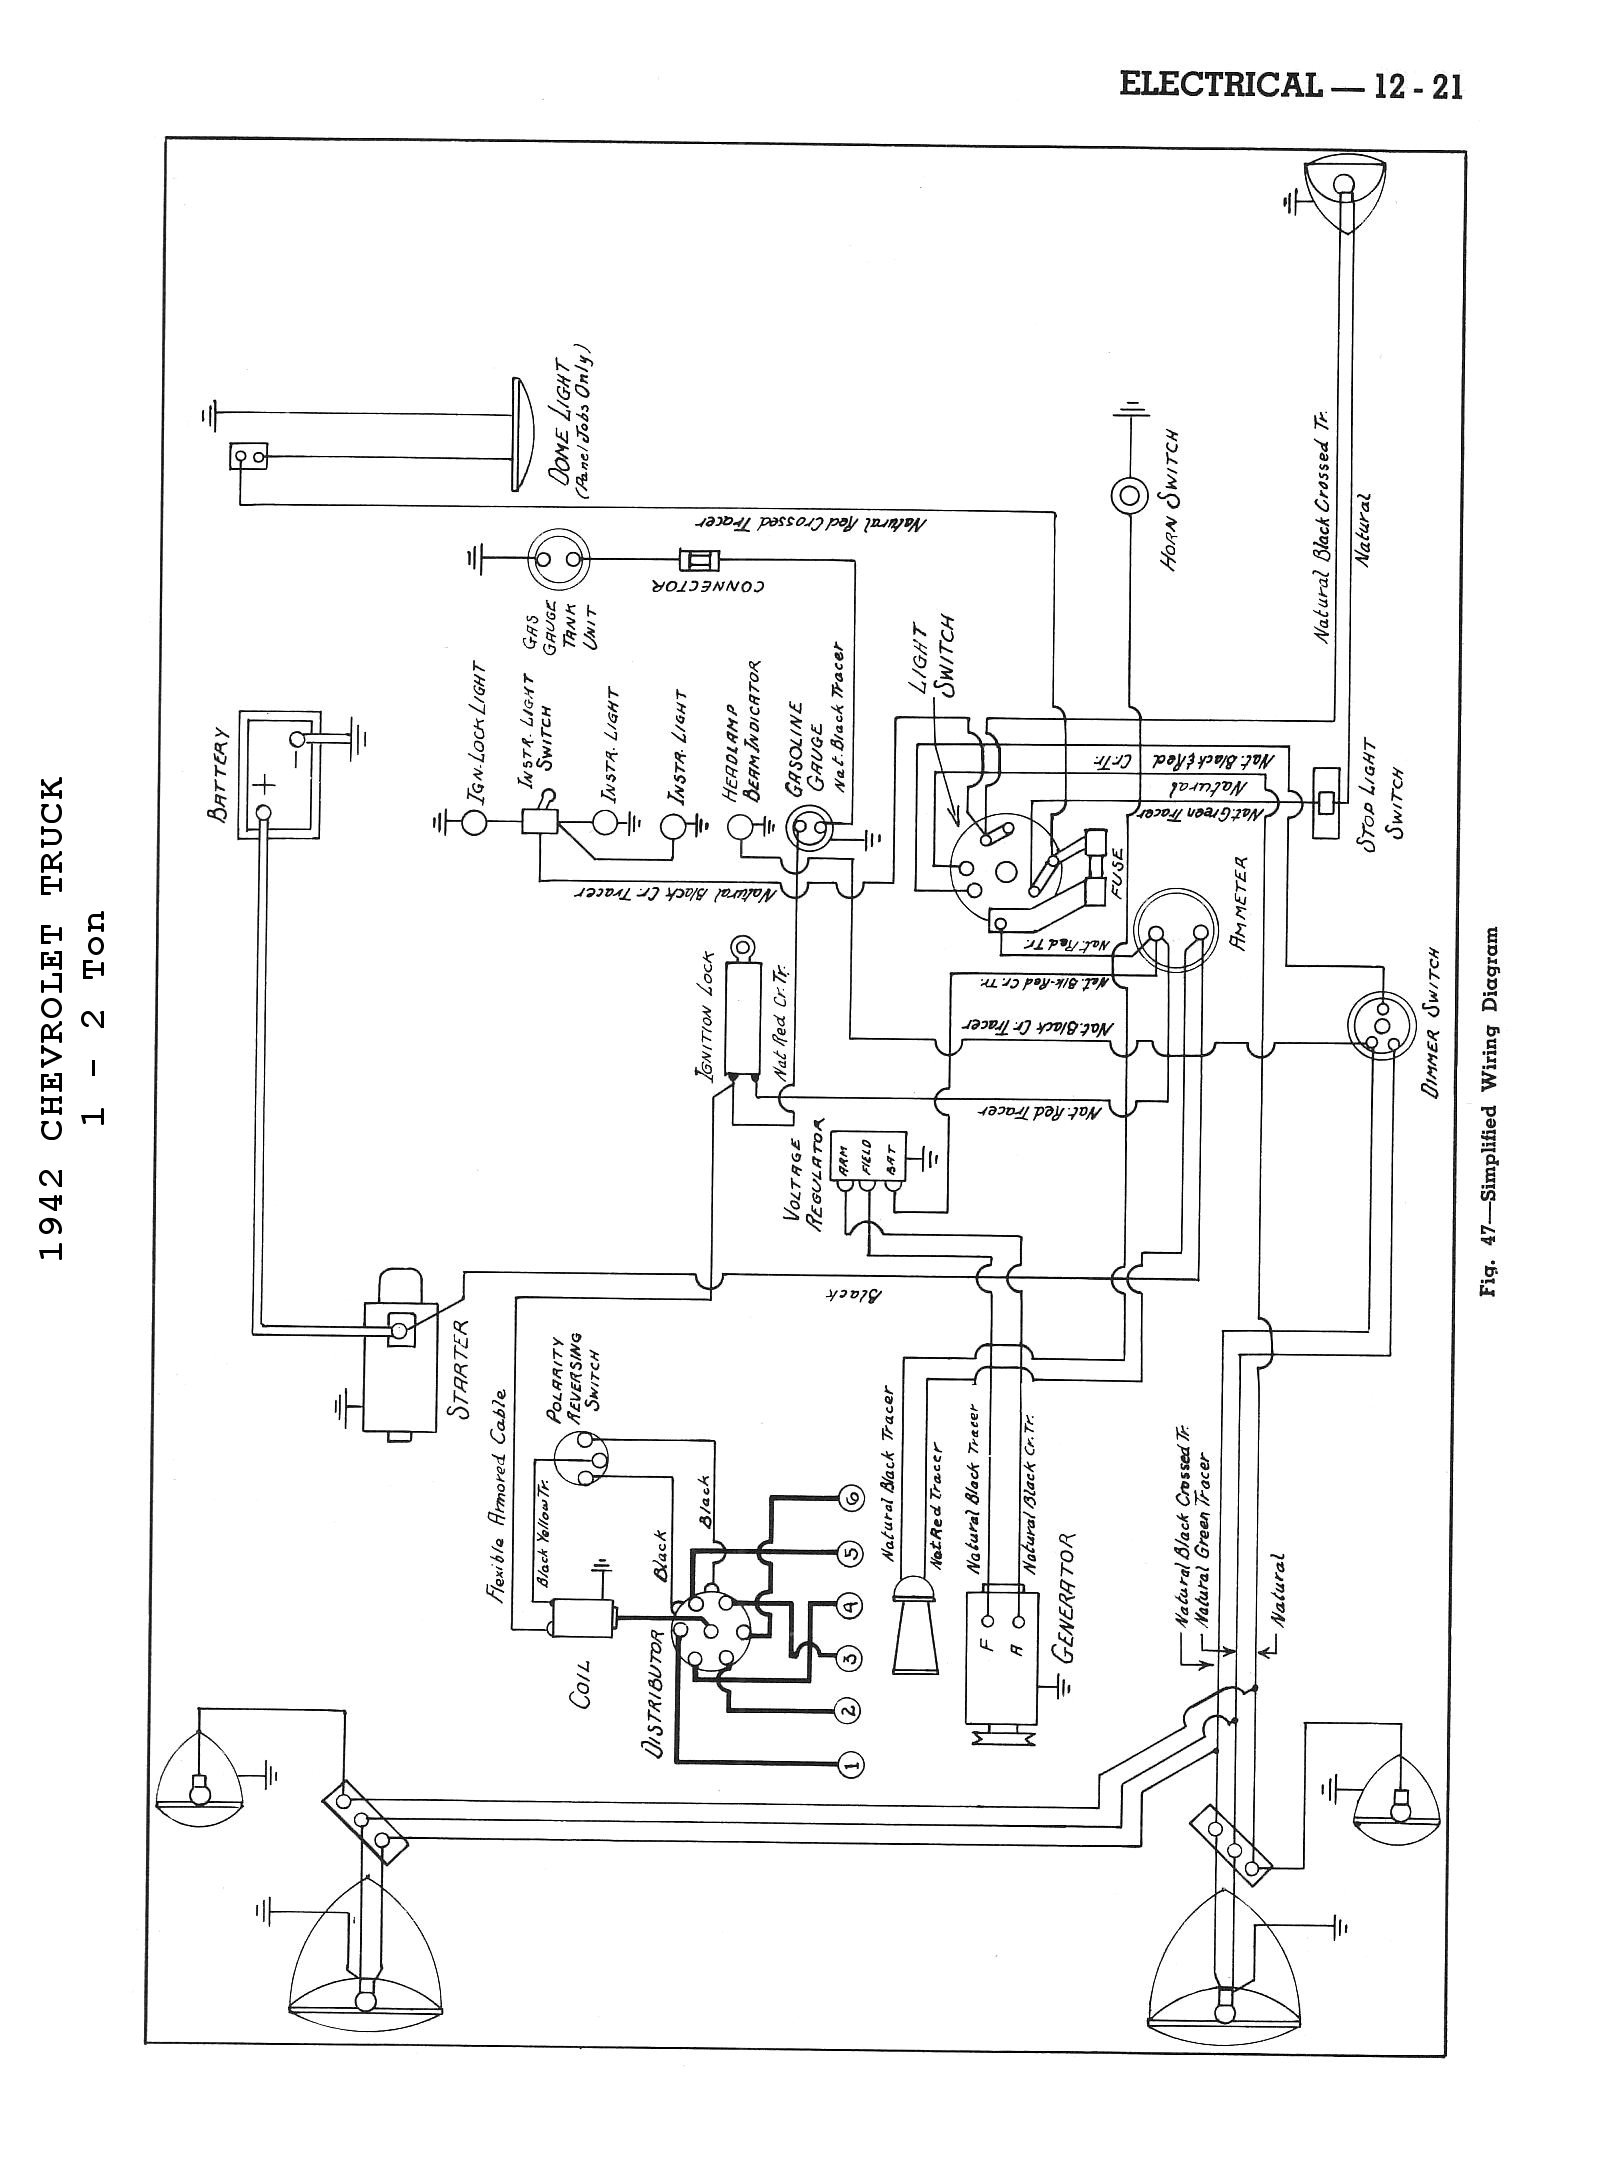 1936 chevy truck wiring diagram for tandem axle trailer with brakes ford harness get free image about